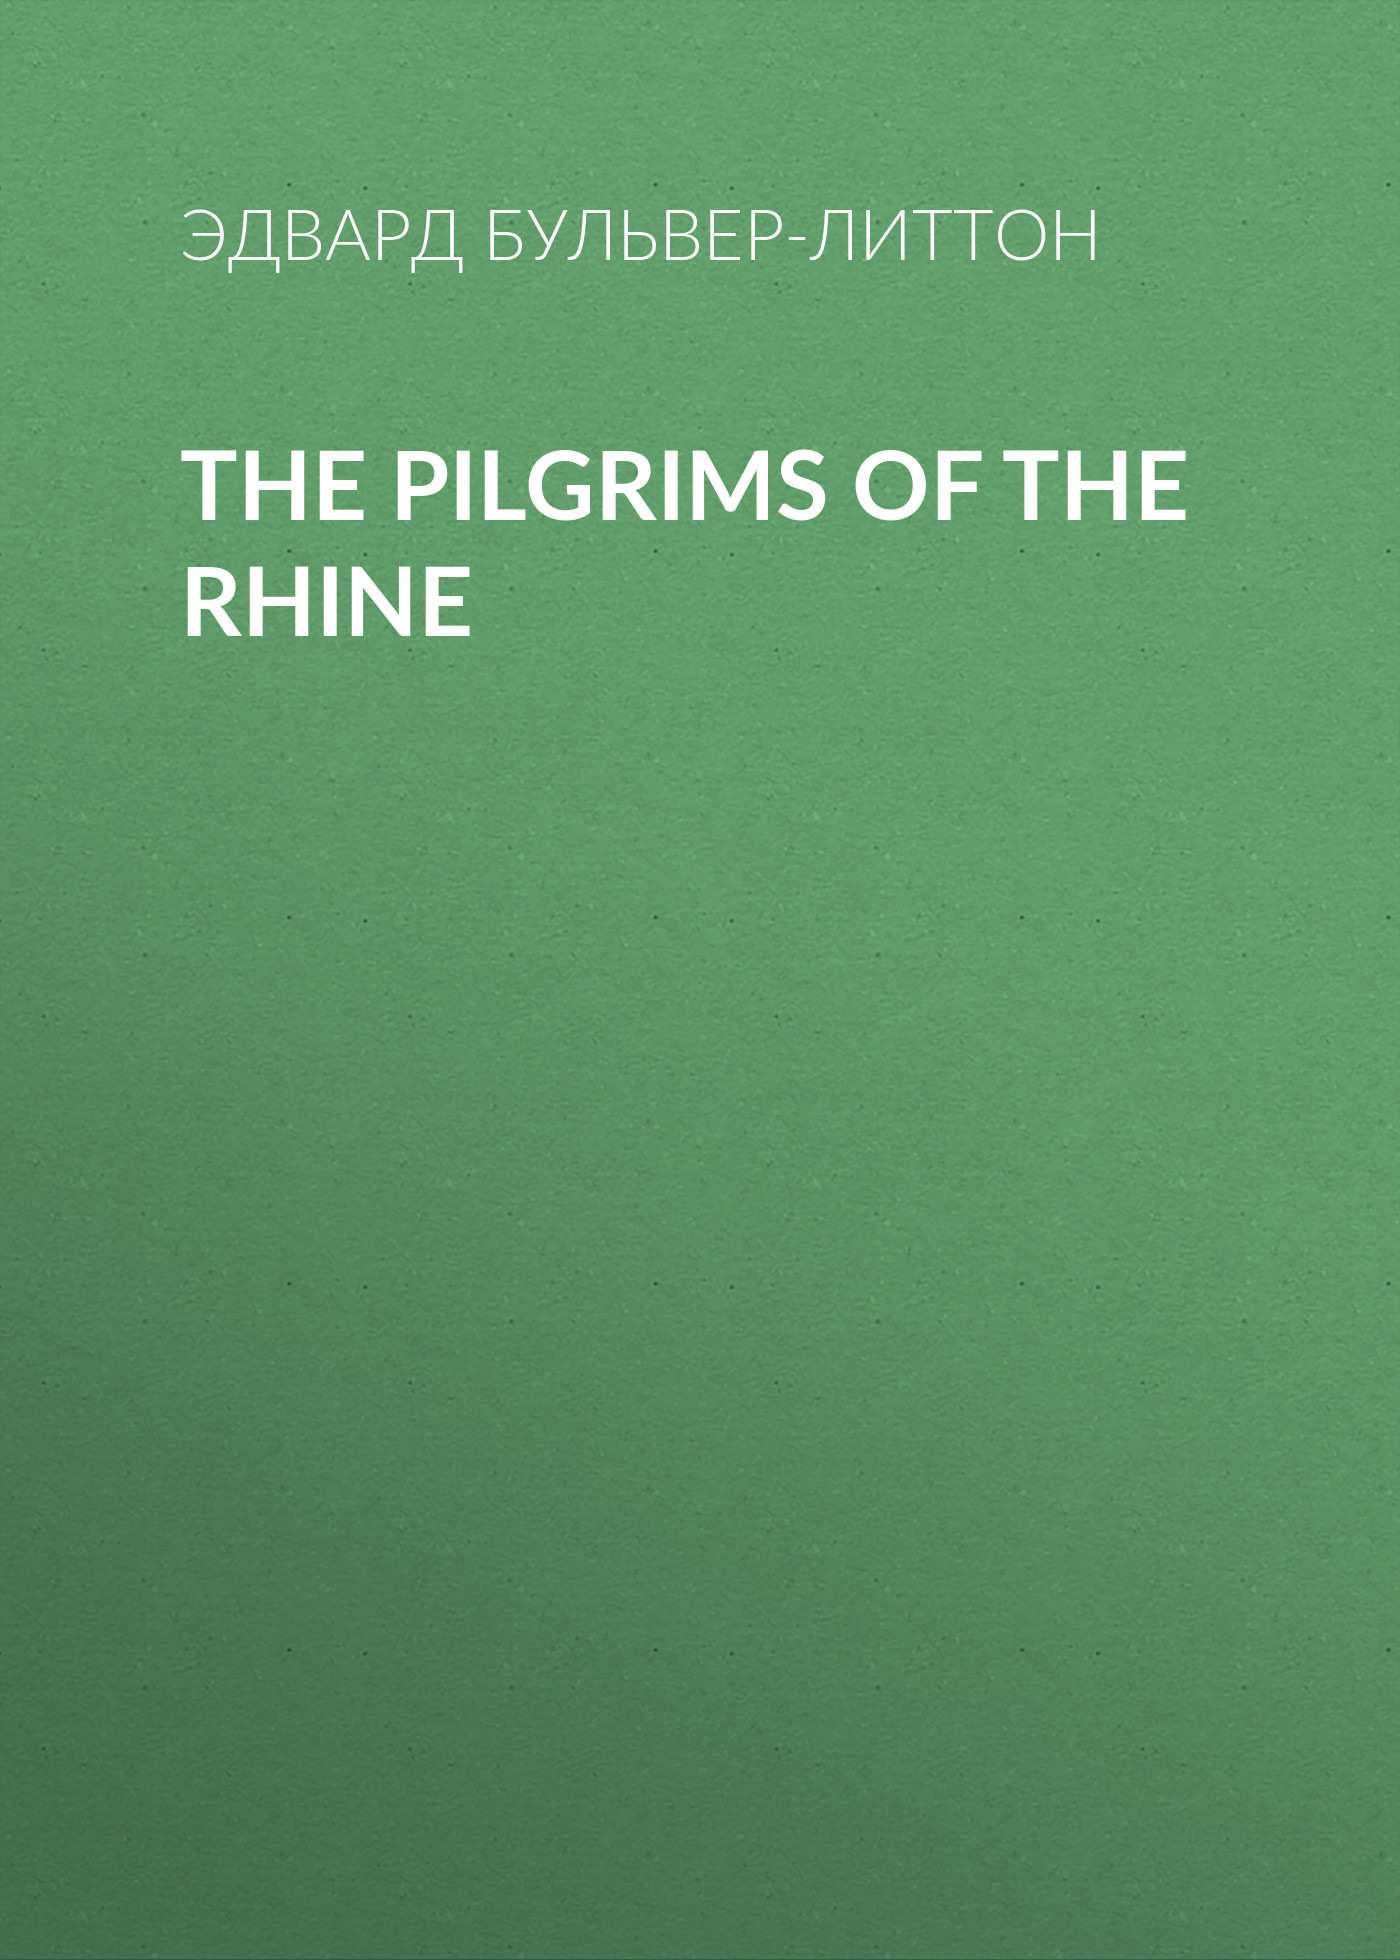 Эдвард Бульвер-Литтон The Pilgrims of the Rhine strange pilgrims